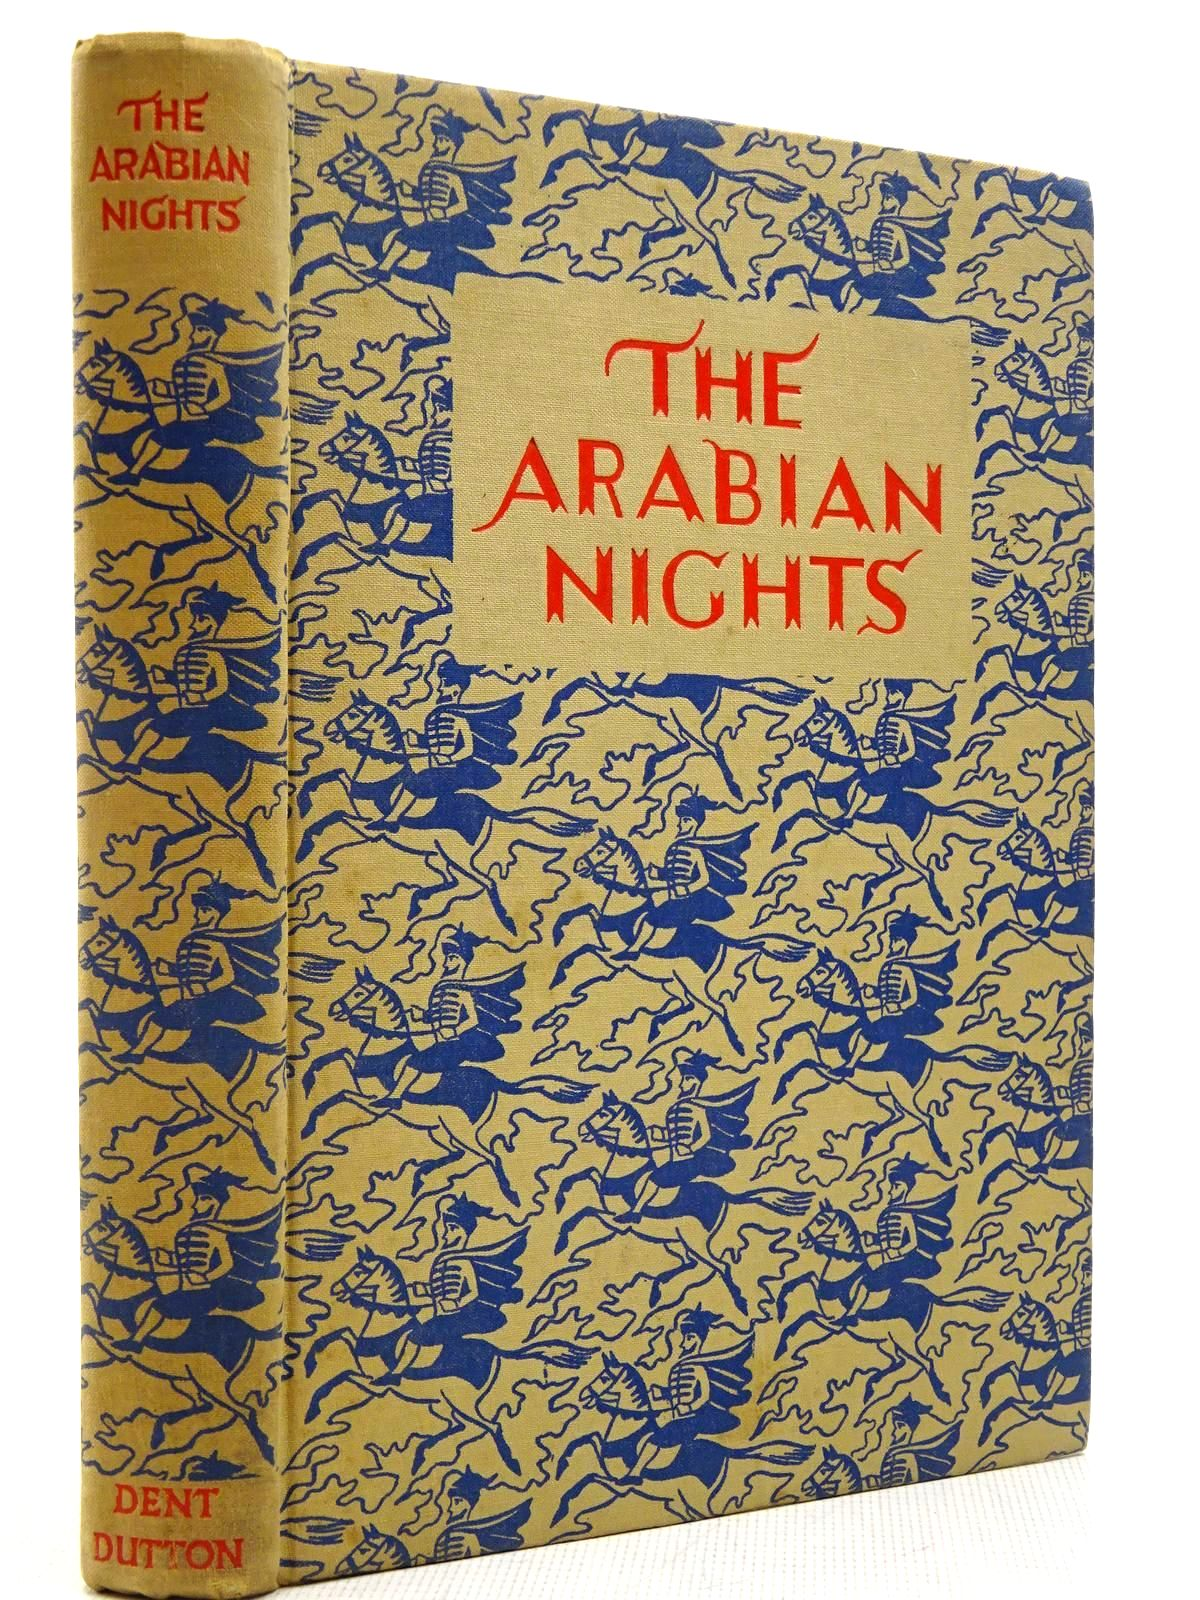 Photo of FAIRY TALES FROM THE ARABIAN NIGHTS written by Dixon, E. illustrated by Kiddell-Monroe, Joan published by J.M. Dent & Sons Ltd. (STOCK CODE: 2129324)  for sale by Stella & Rose's Books